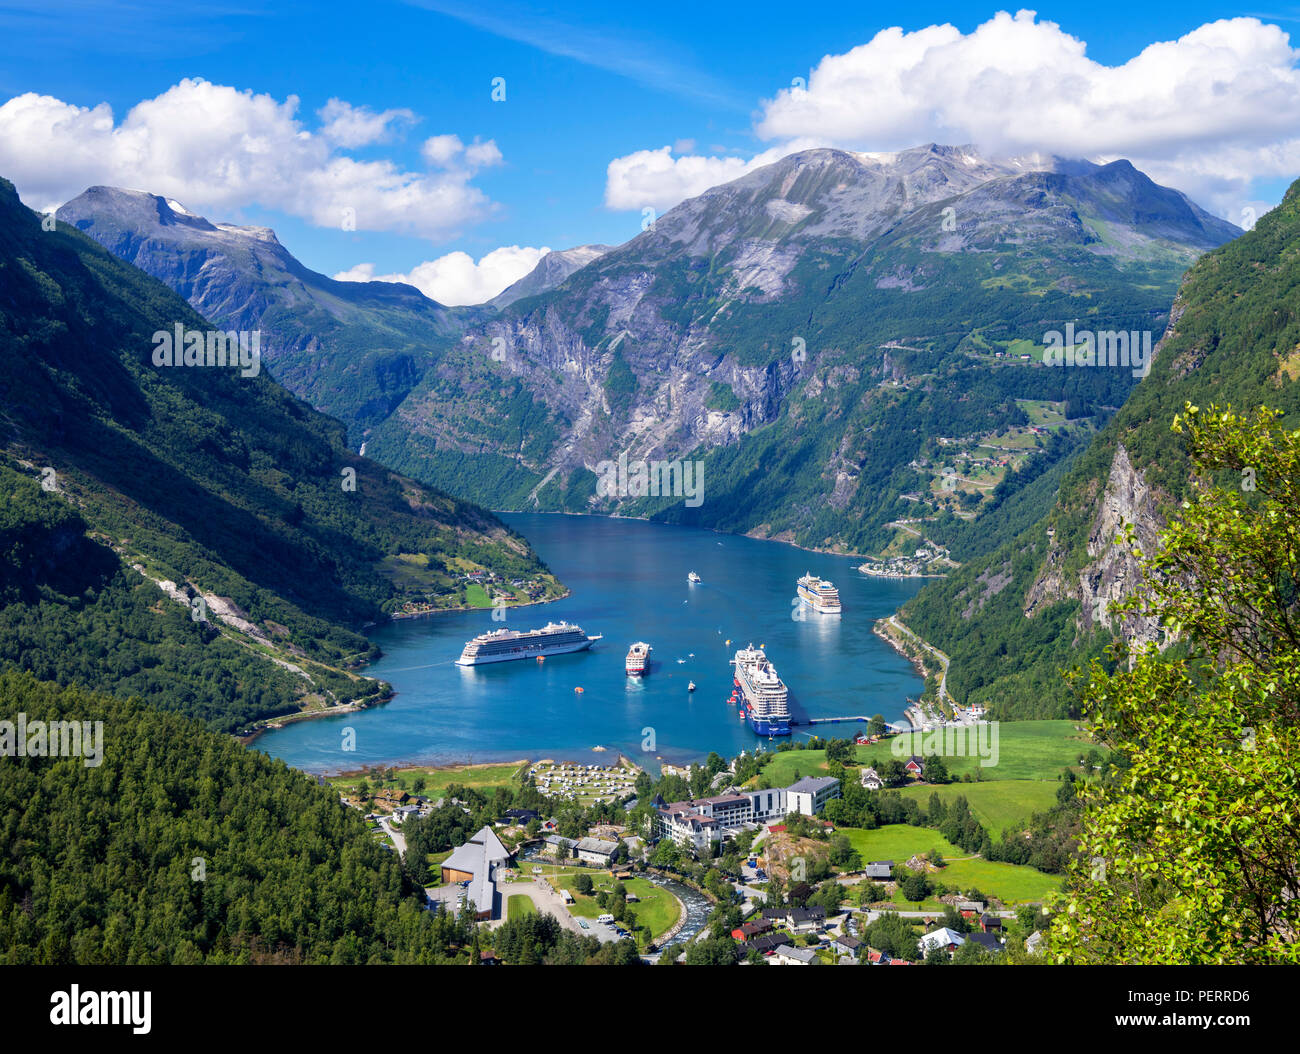 Geirangerfjord, Norway. View over the town of Geiranger and Geirangerfjord, Norway - Stock Image